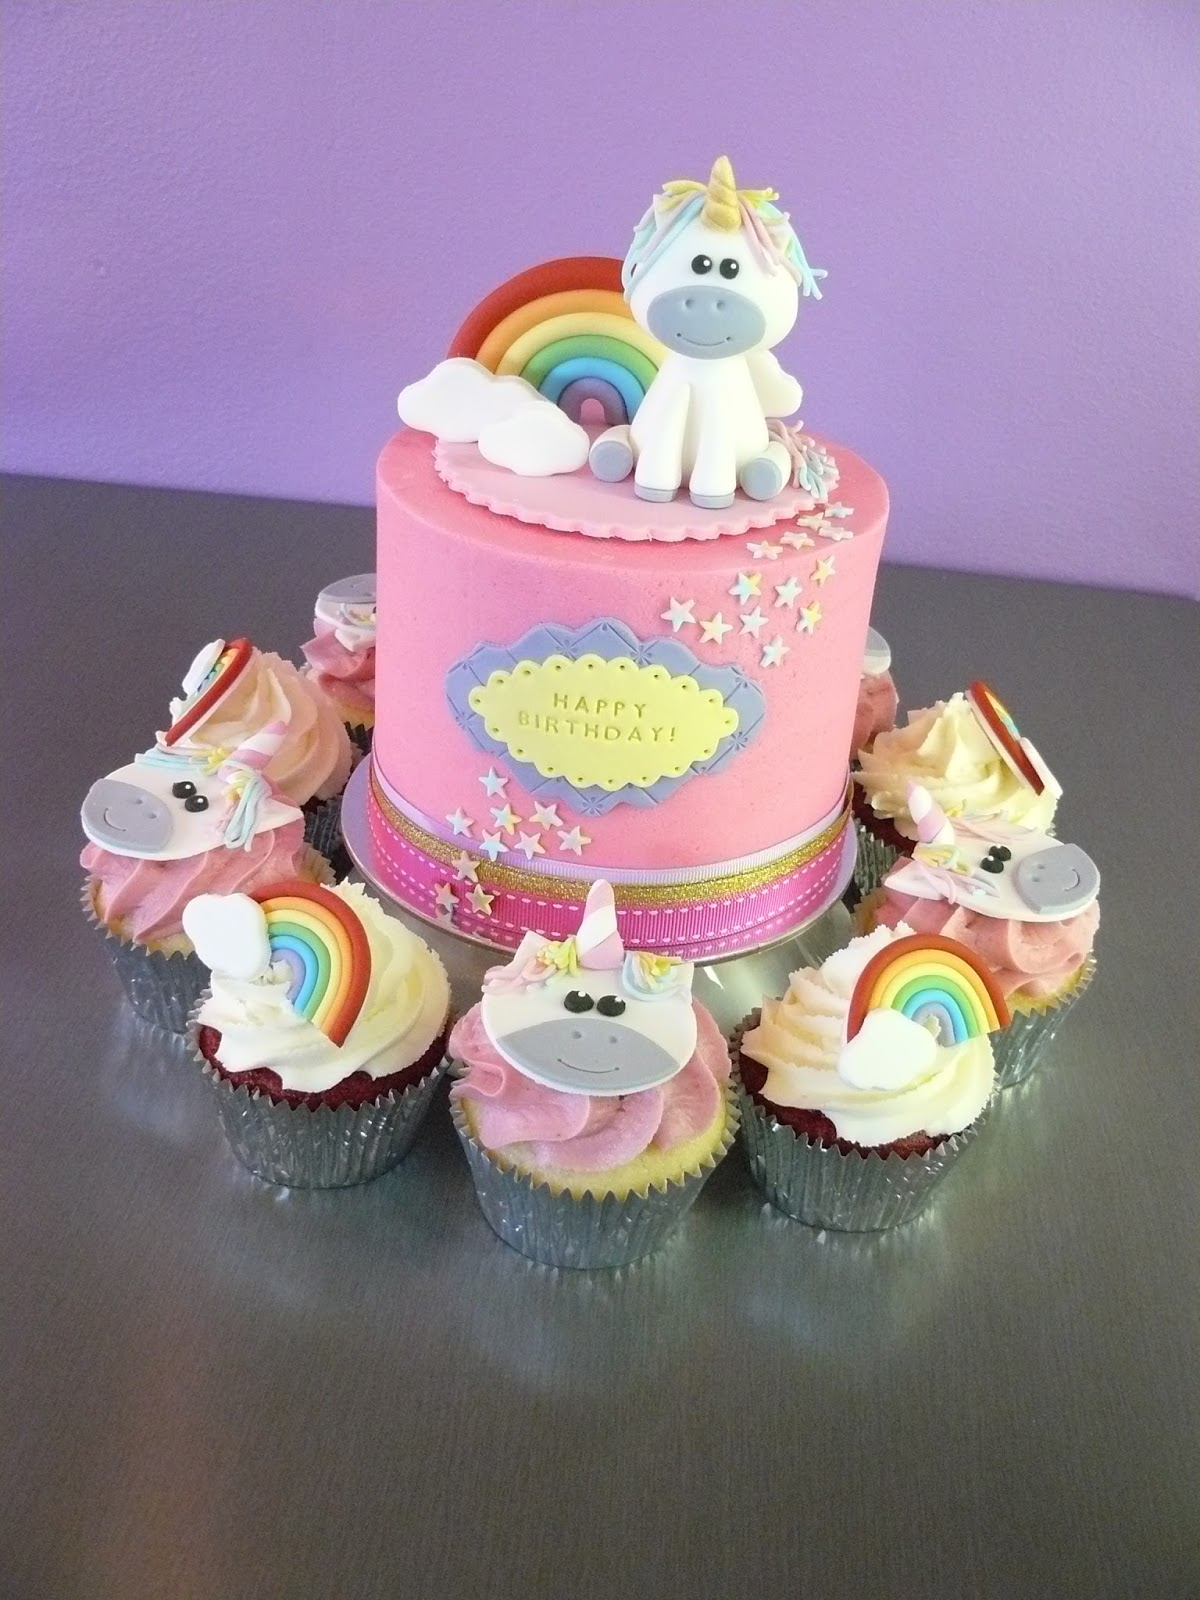 The Cup Cake Taste Brisbane Cupcakes Unicorn Cupcakes